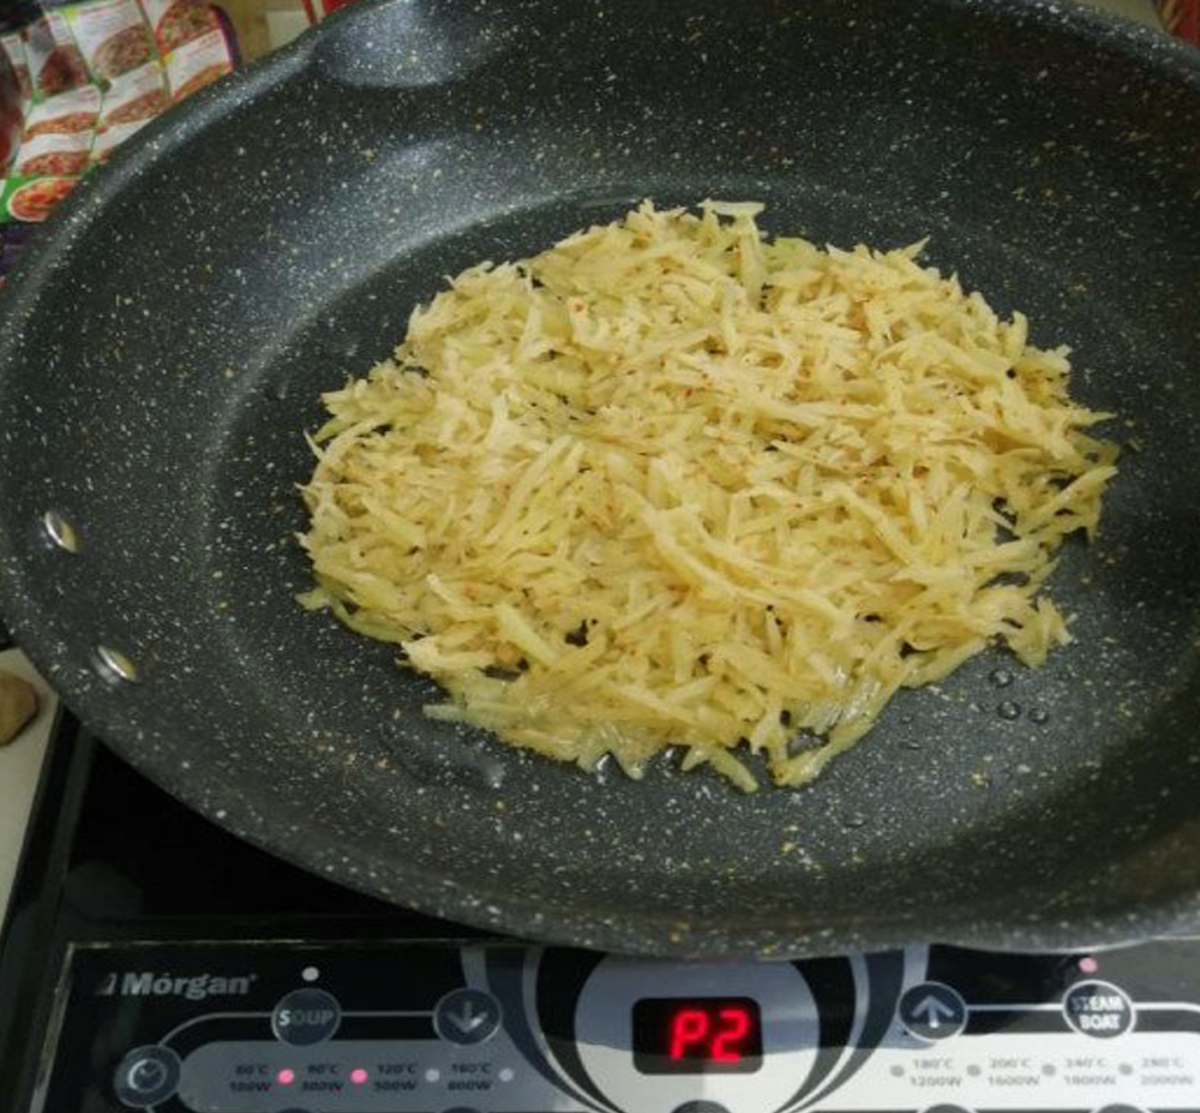 Spread the potatoes on the pan to fry until golden brown